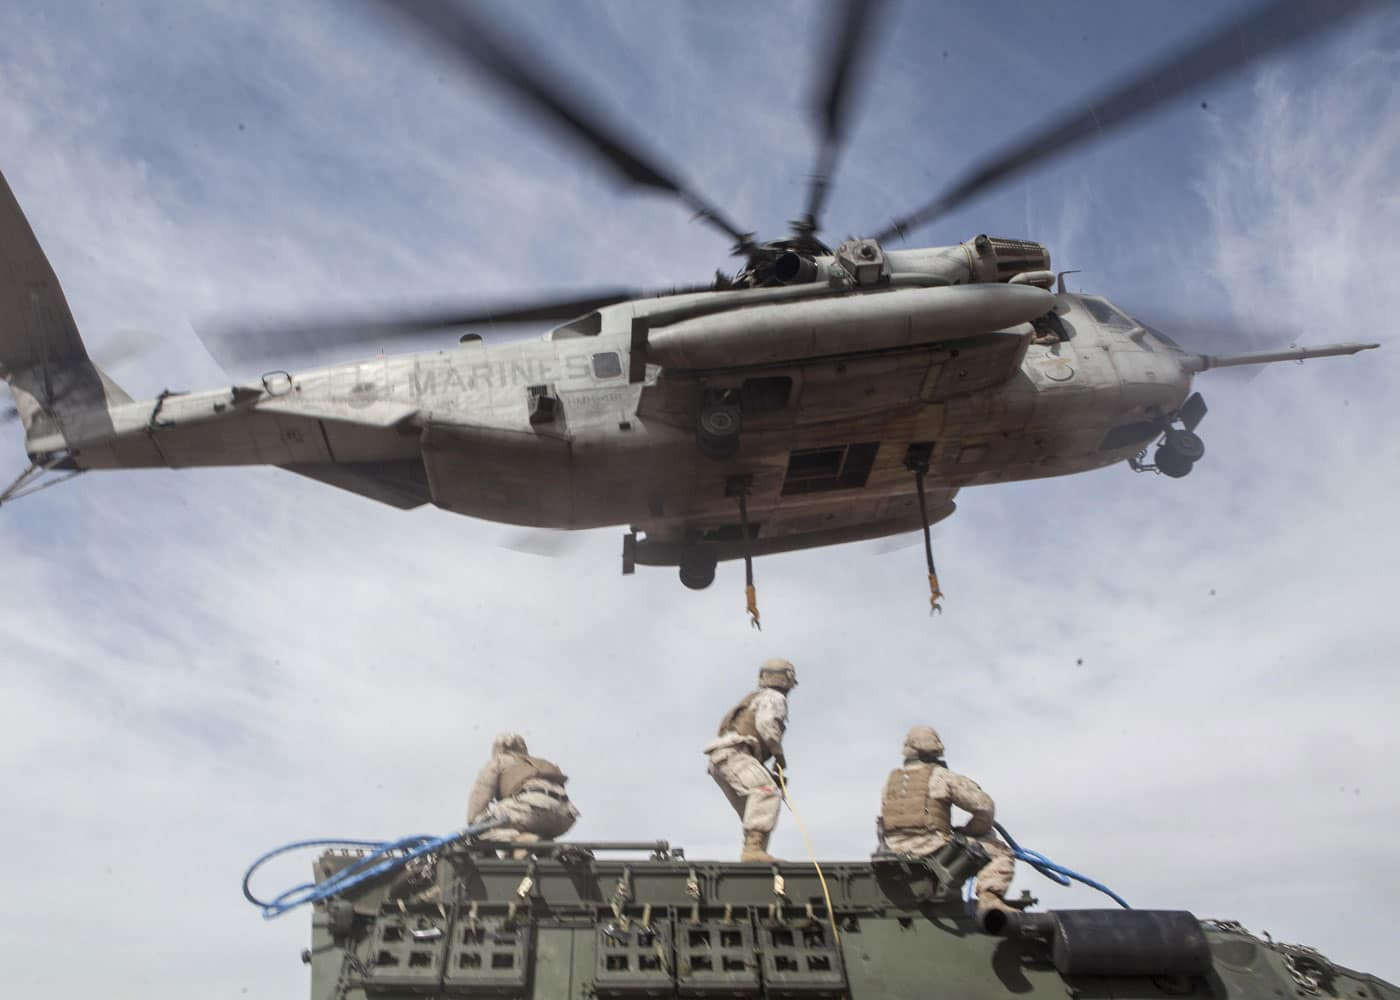 A U.S. Marine Corps CH-53E Super Stallion assigned to Marine Aviation Weapons and Tactics Squadron One lifts a Humvee during a CH-53 tactics exercise at Auxiliary Airfield 2, Yuma, Arizona.